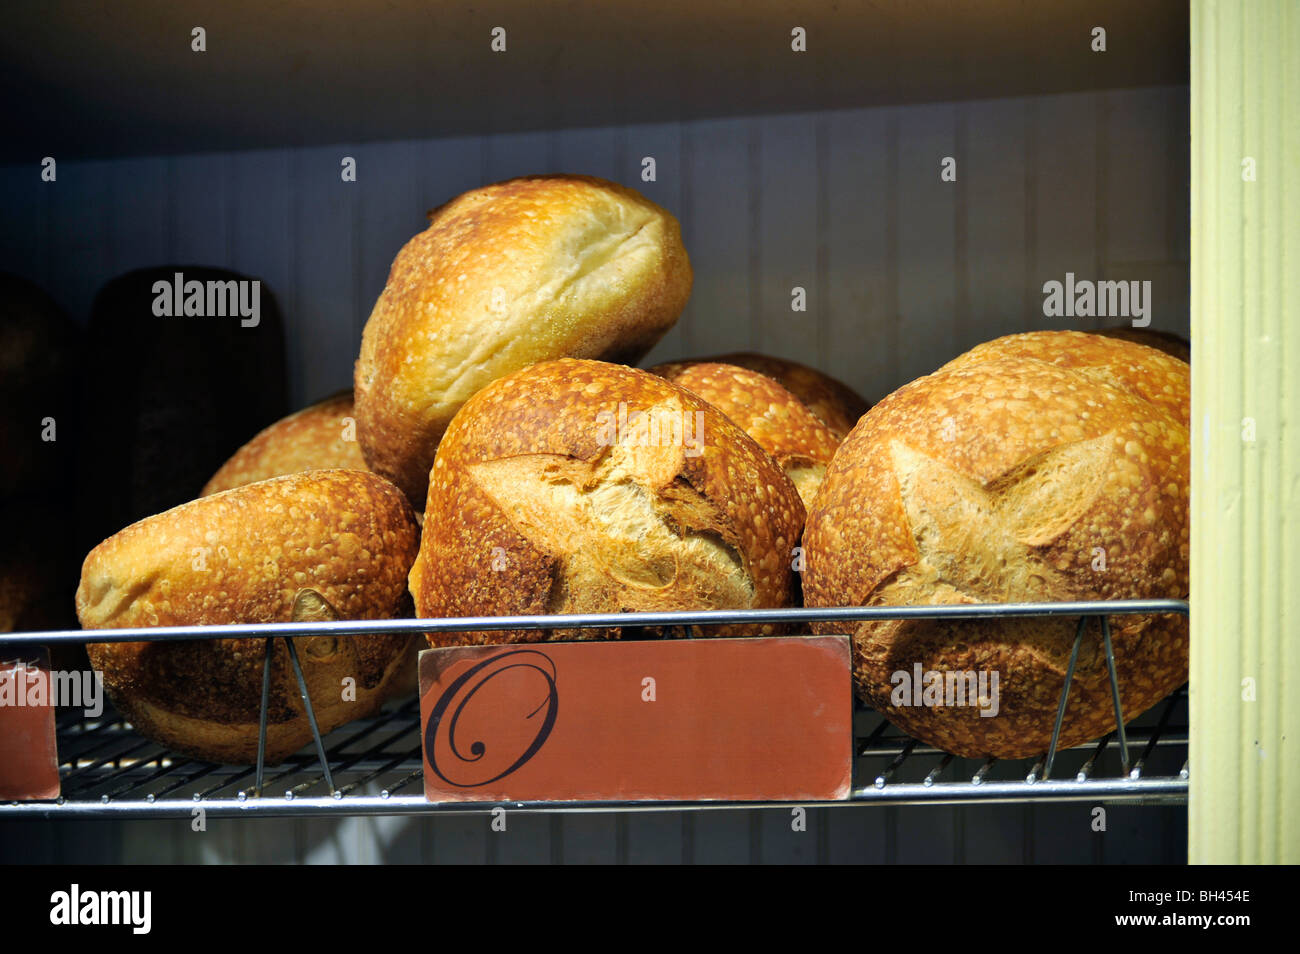 Fresh Sour Dough Artisan Bread Displayed in a Bakery - Stock Image